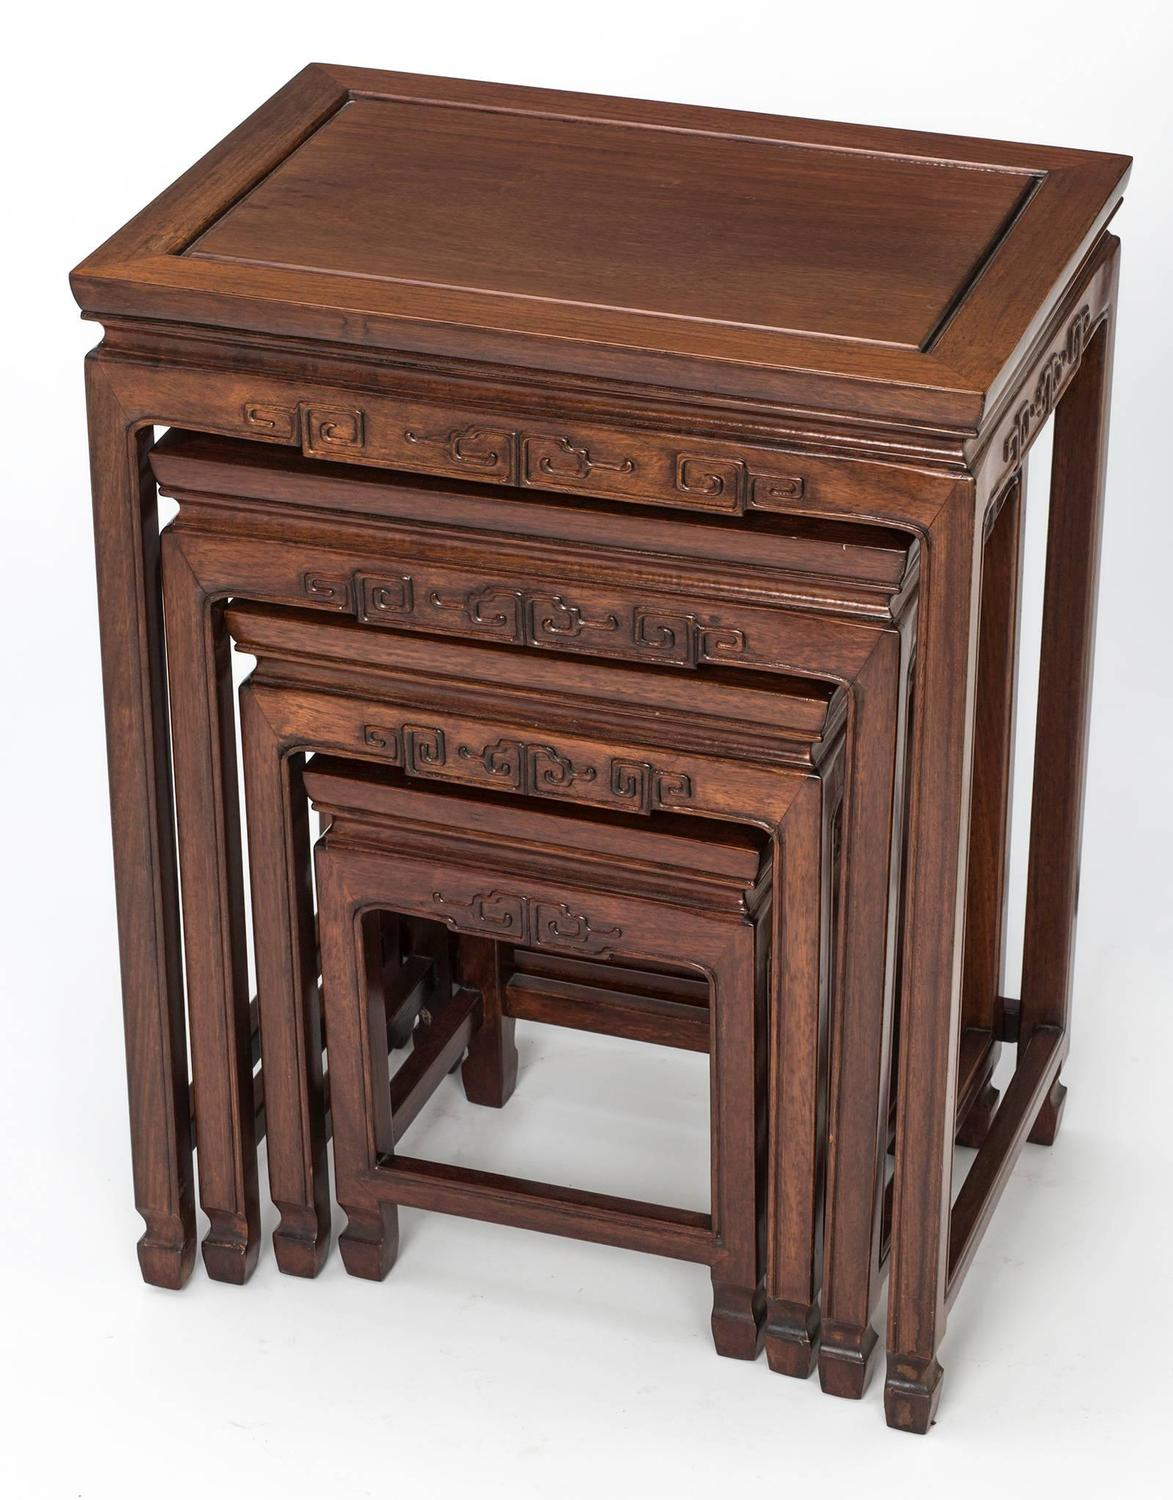 Asian Nesting Tables Rosewood Chinese Nesting Tables For Sale At 1stdibs